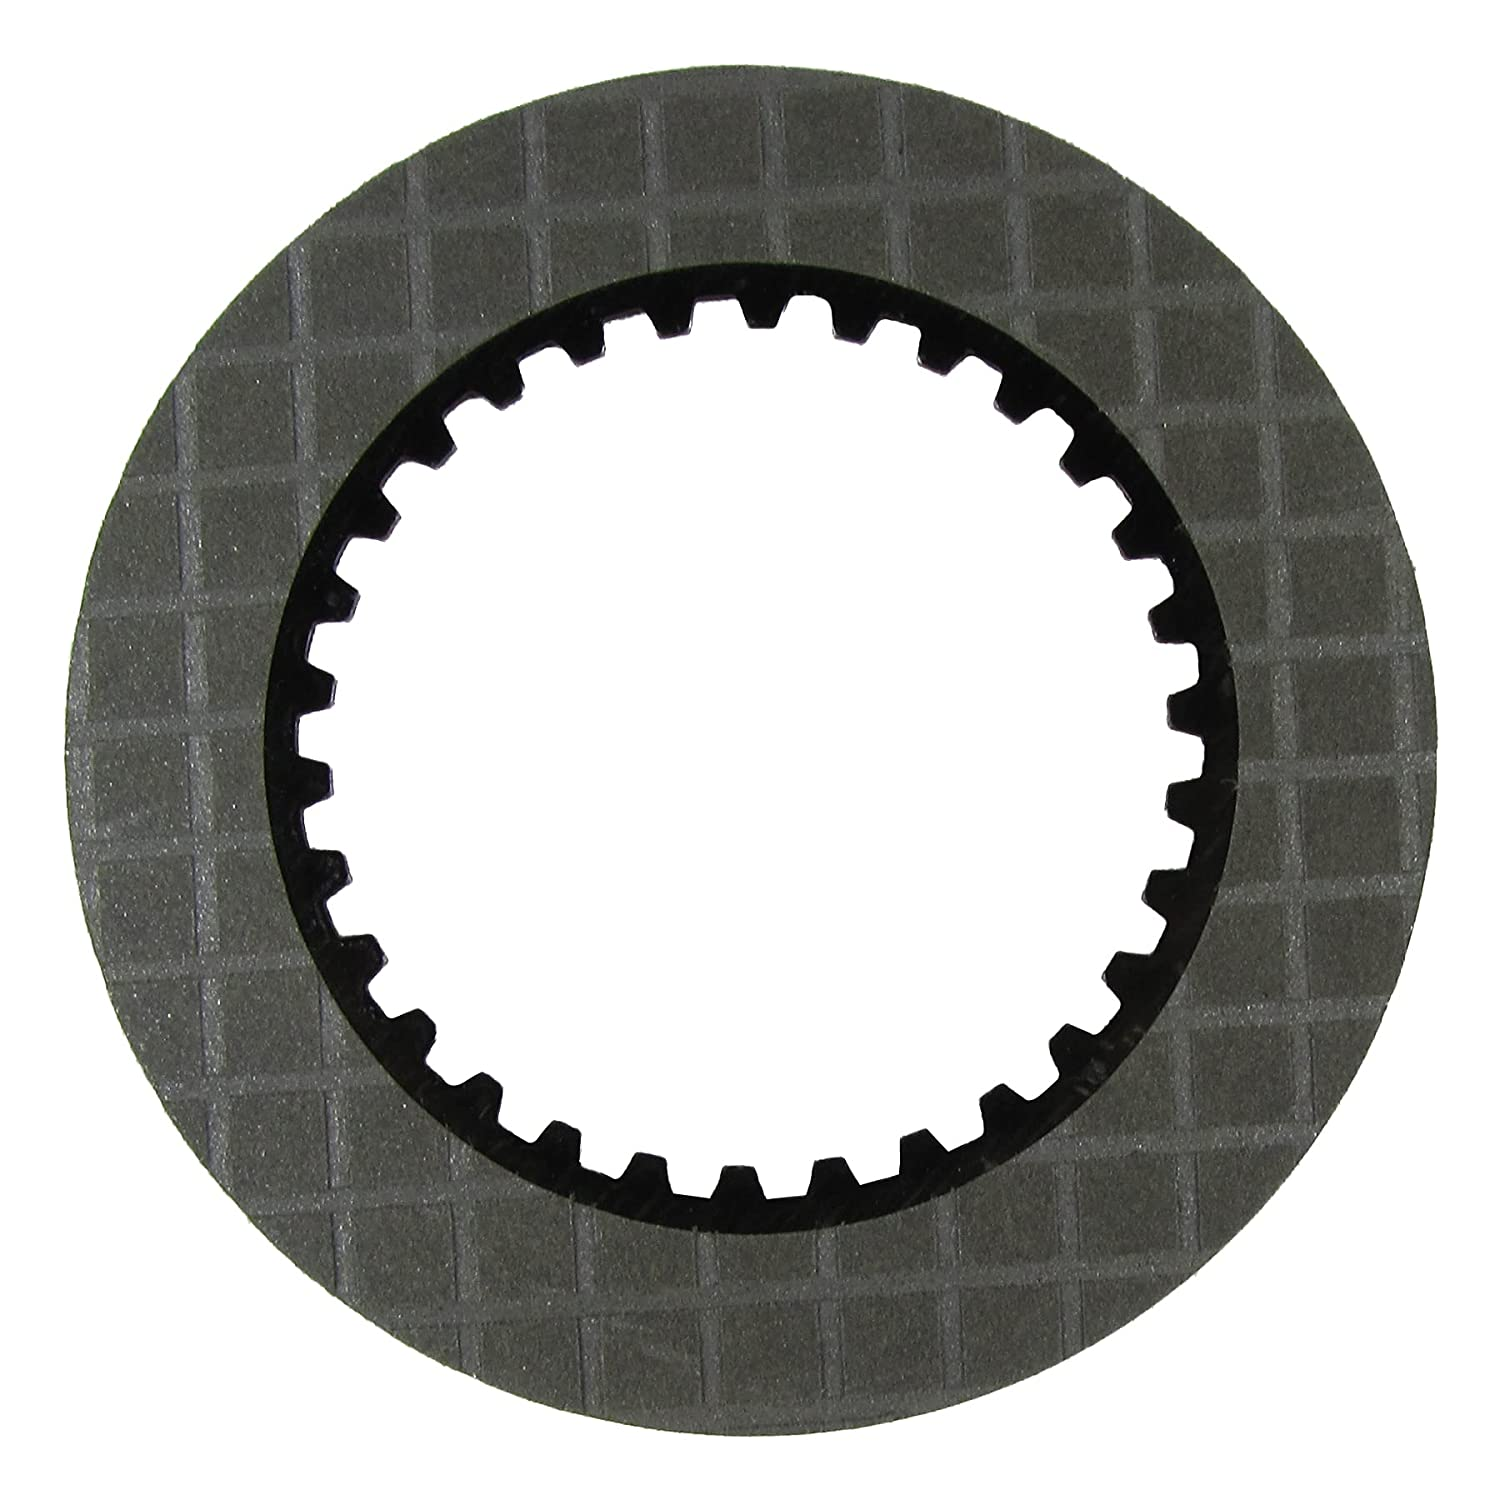 Friction Clutch Toyota 32461-23630- 71 San Diego Mall 330704 Alto Replaced Max 56% OFF by #